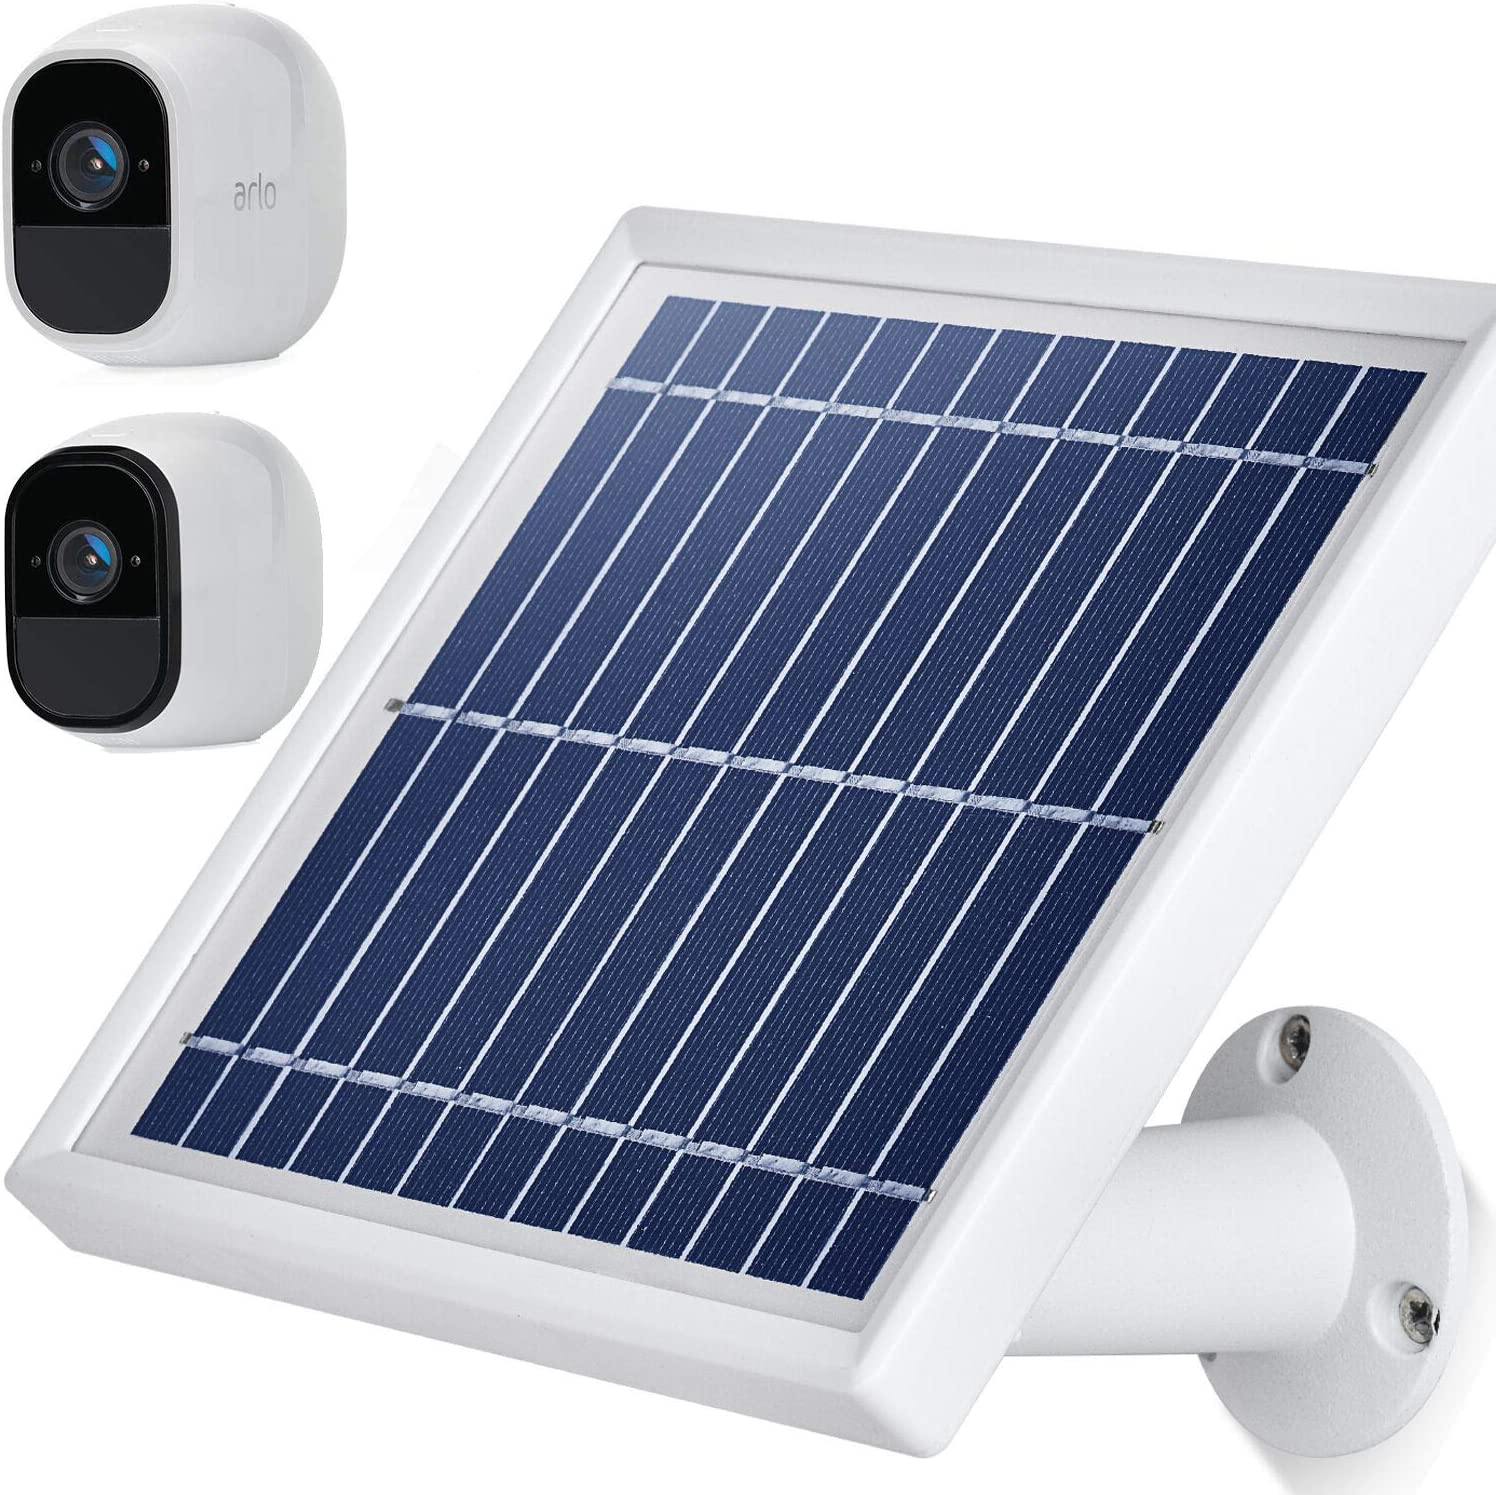 Silver iTODOS Solar Panel Compatible with Arlo Pro and Arlo Pro 2 11.8Ft Outdoor Power Charging Cable and Adjustable Mount/